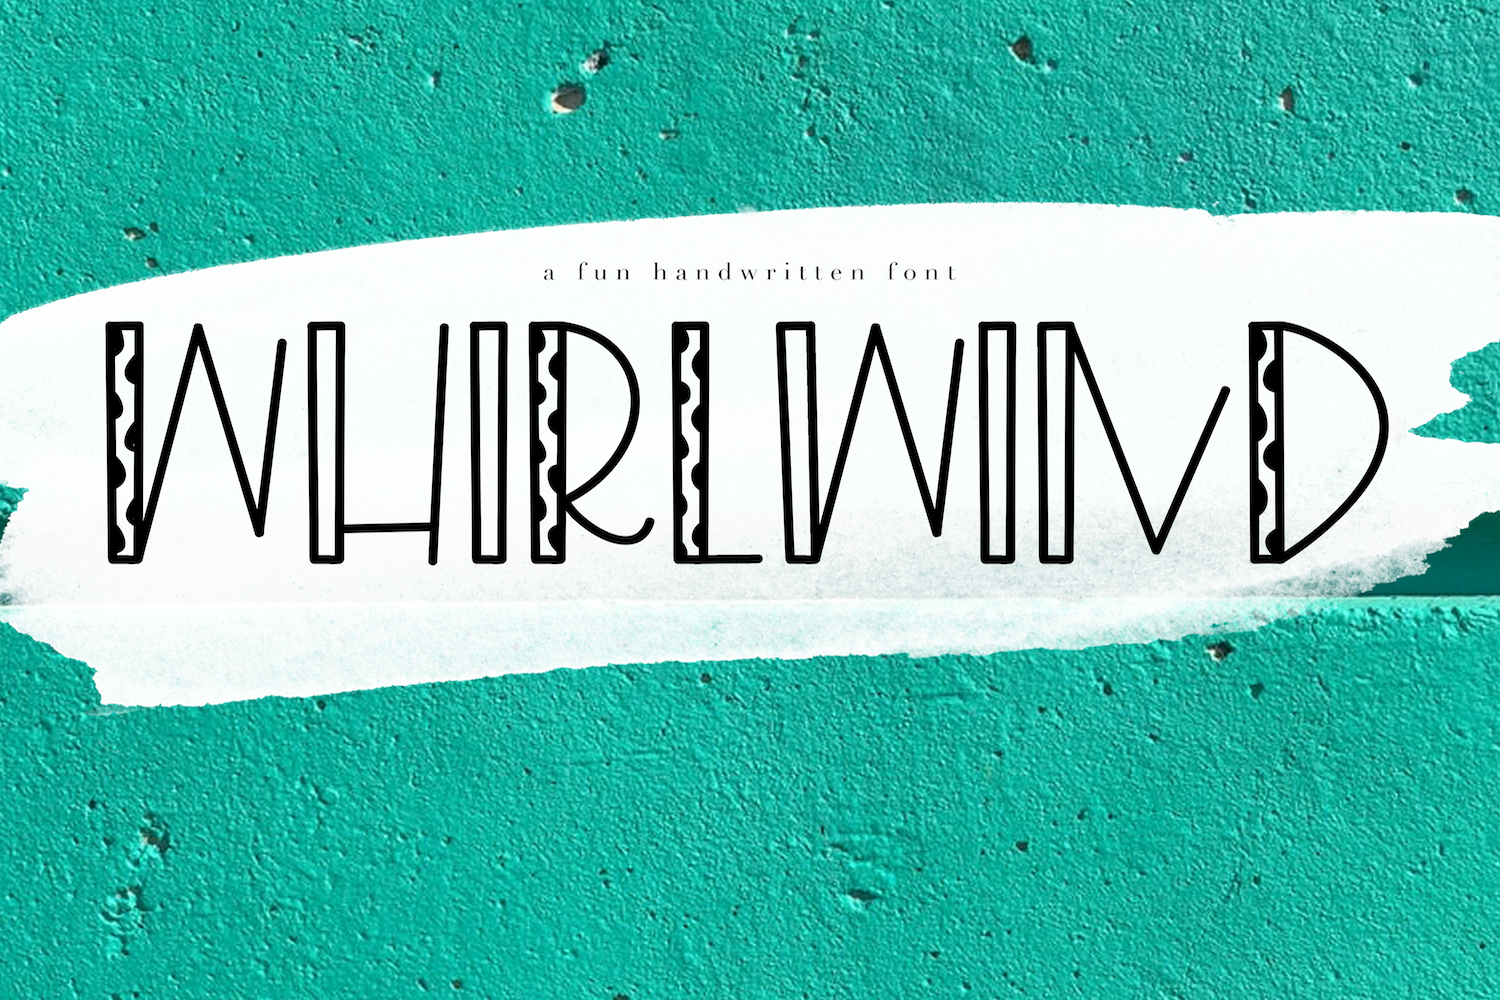 Whirlwind - A Fun Handwritten Font example image 1